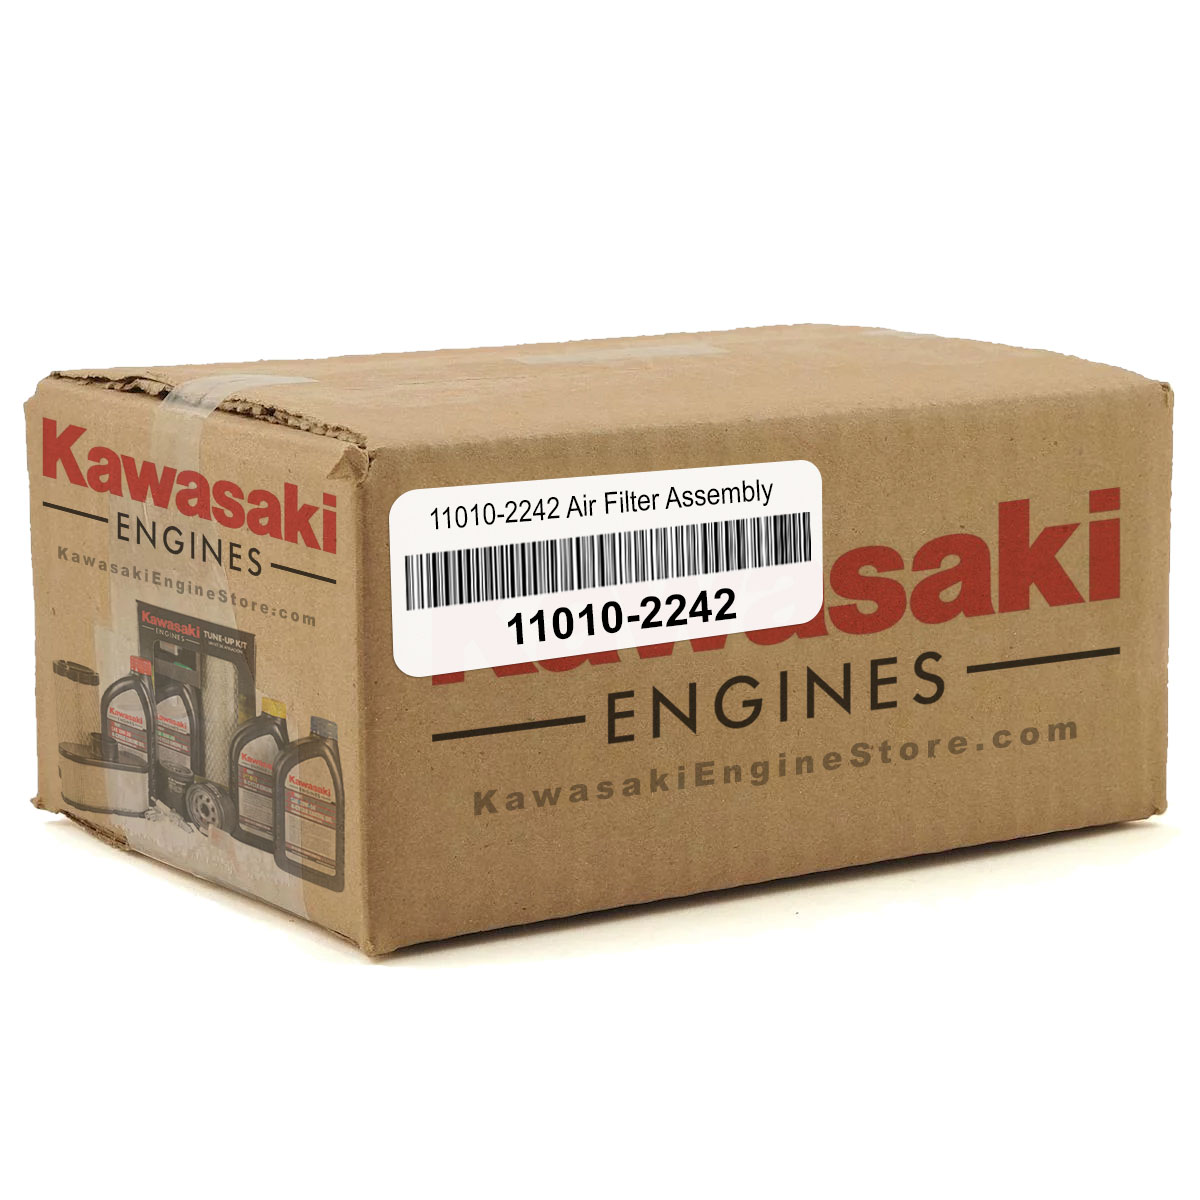 Kawasaki 11010-2242 Air Filter Assembly